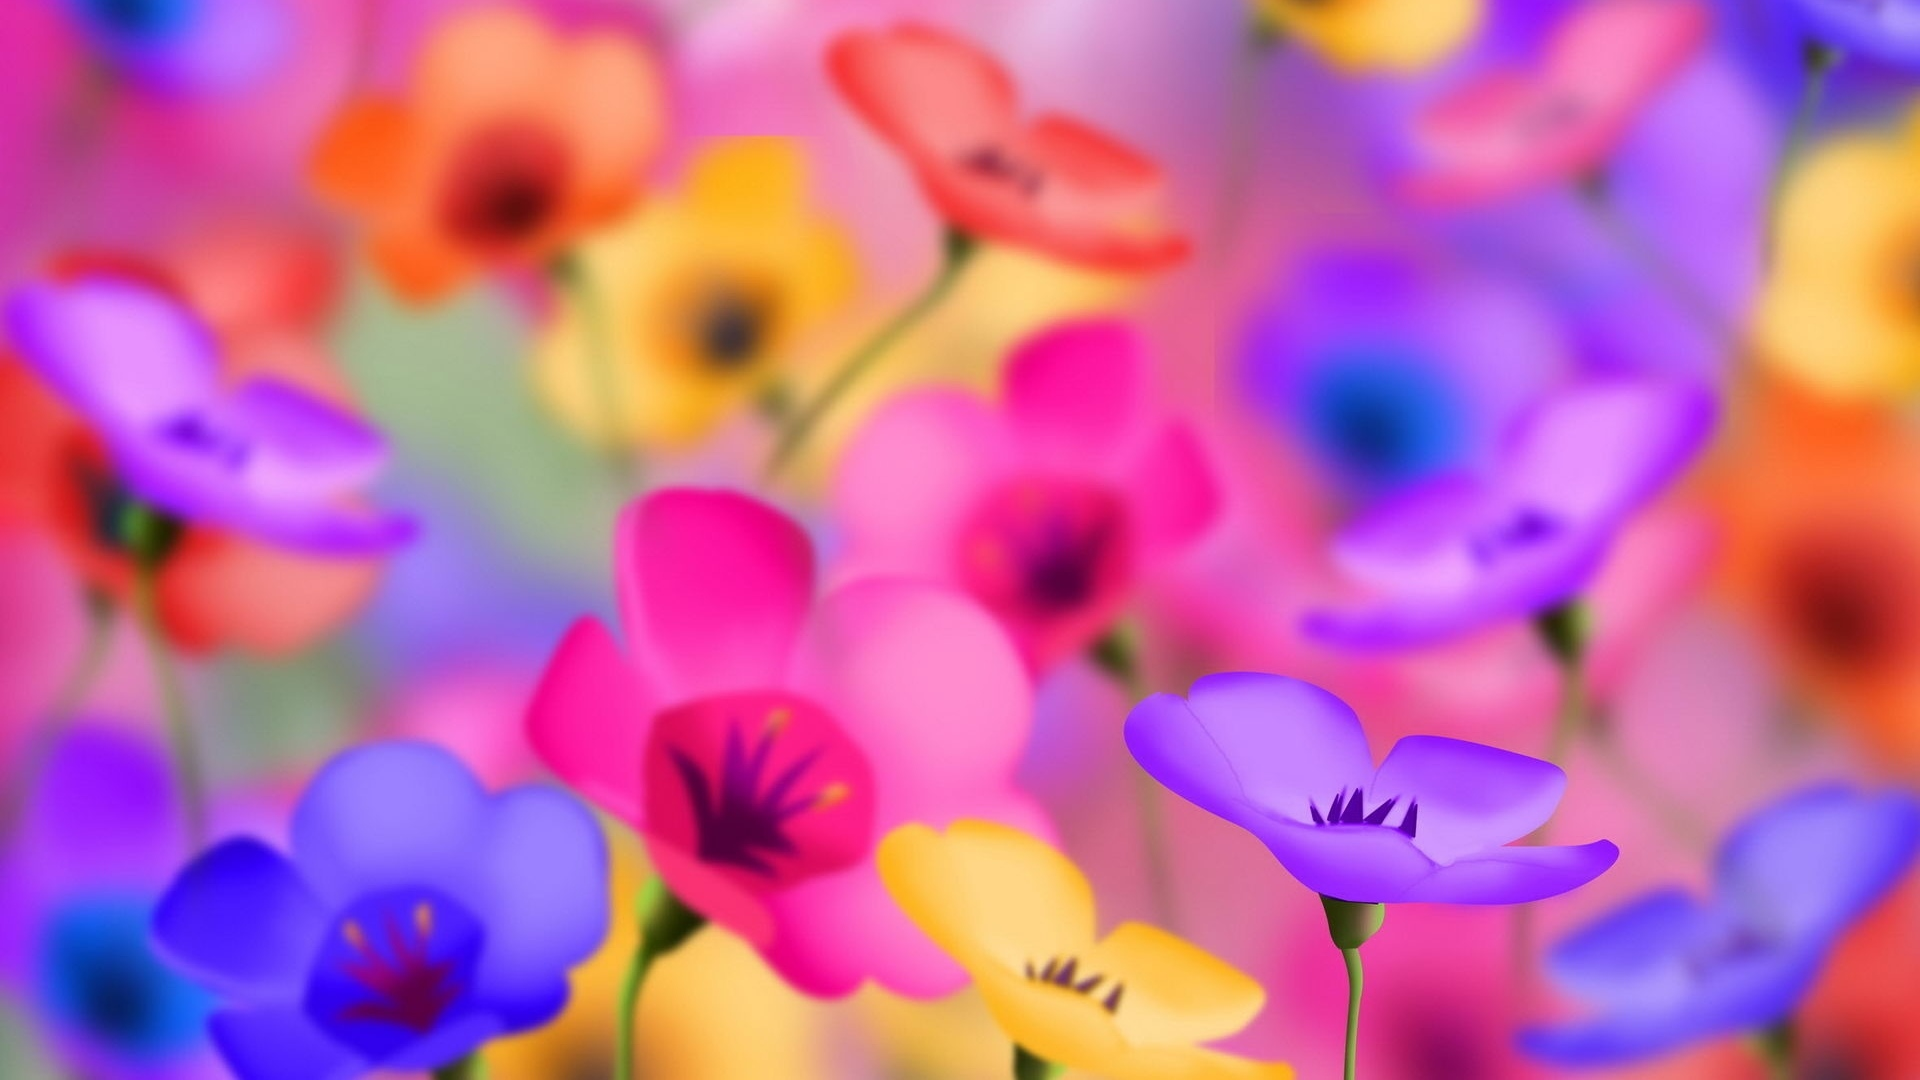 Full HD Wallpapers 1080p Flowers